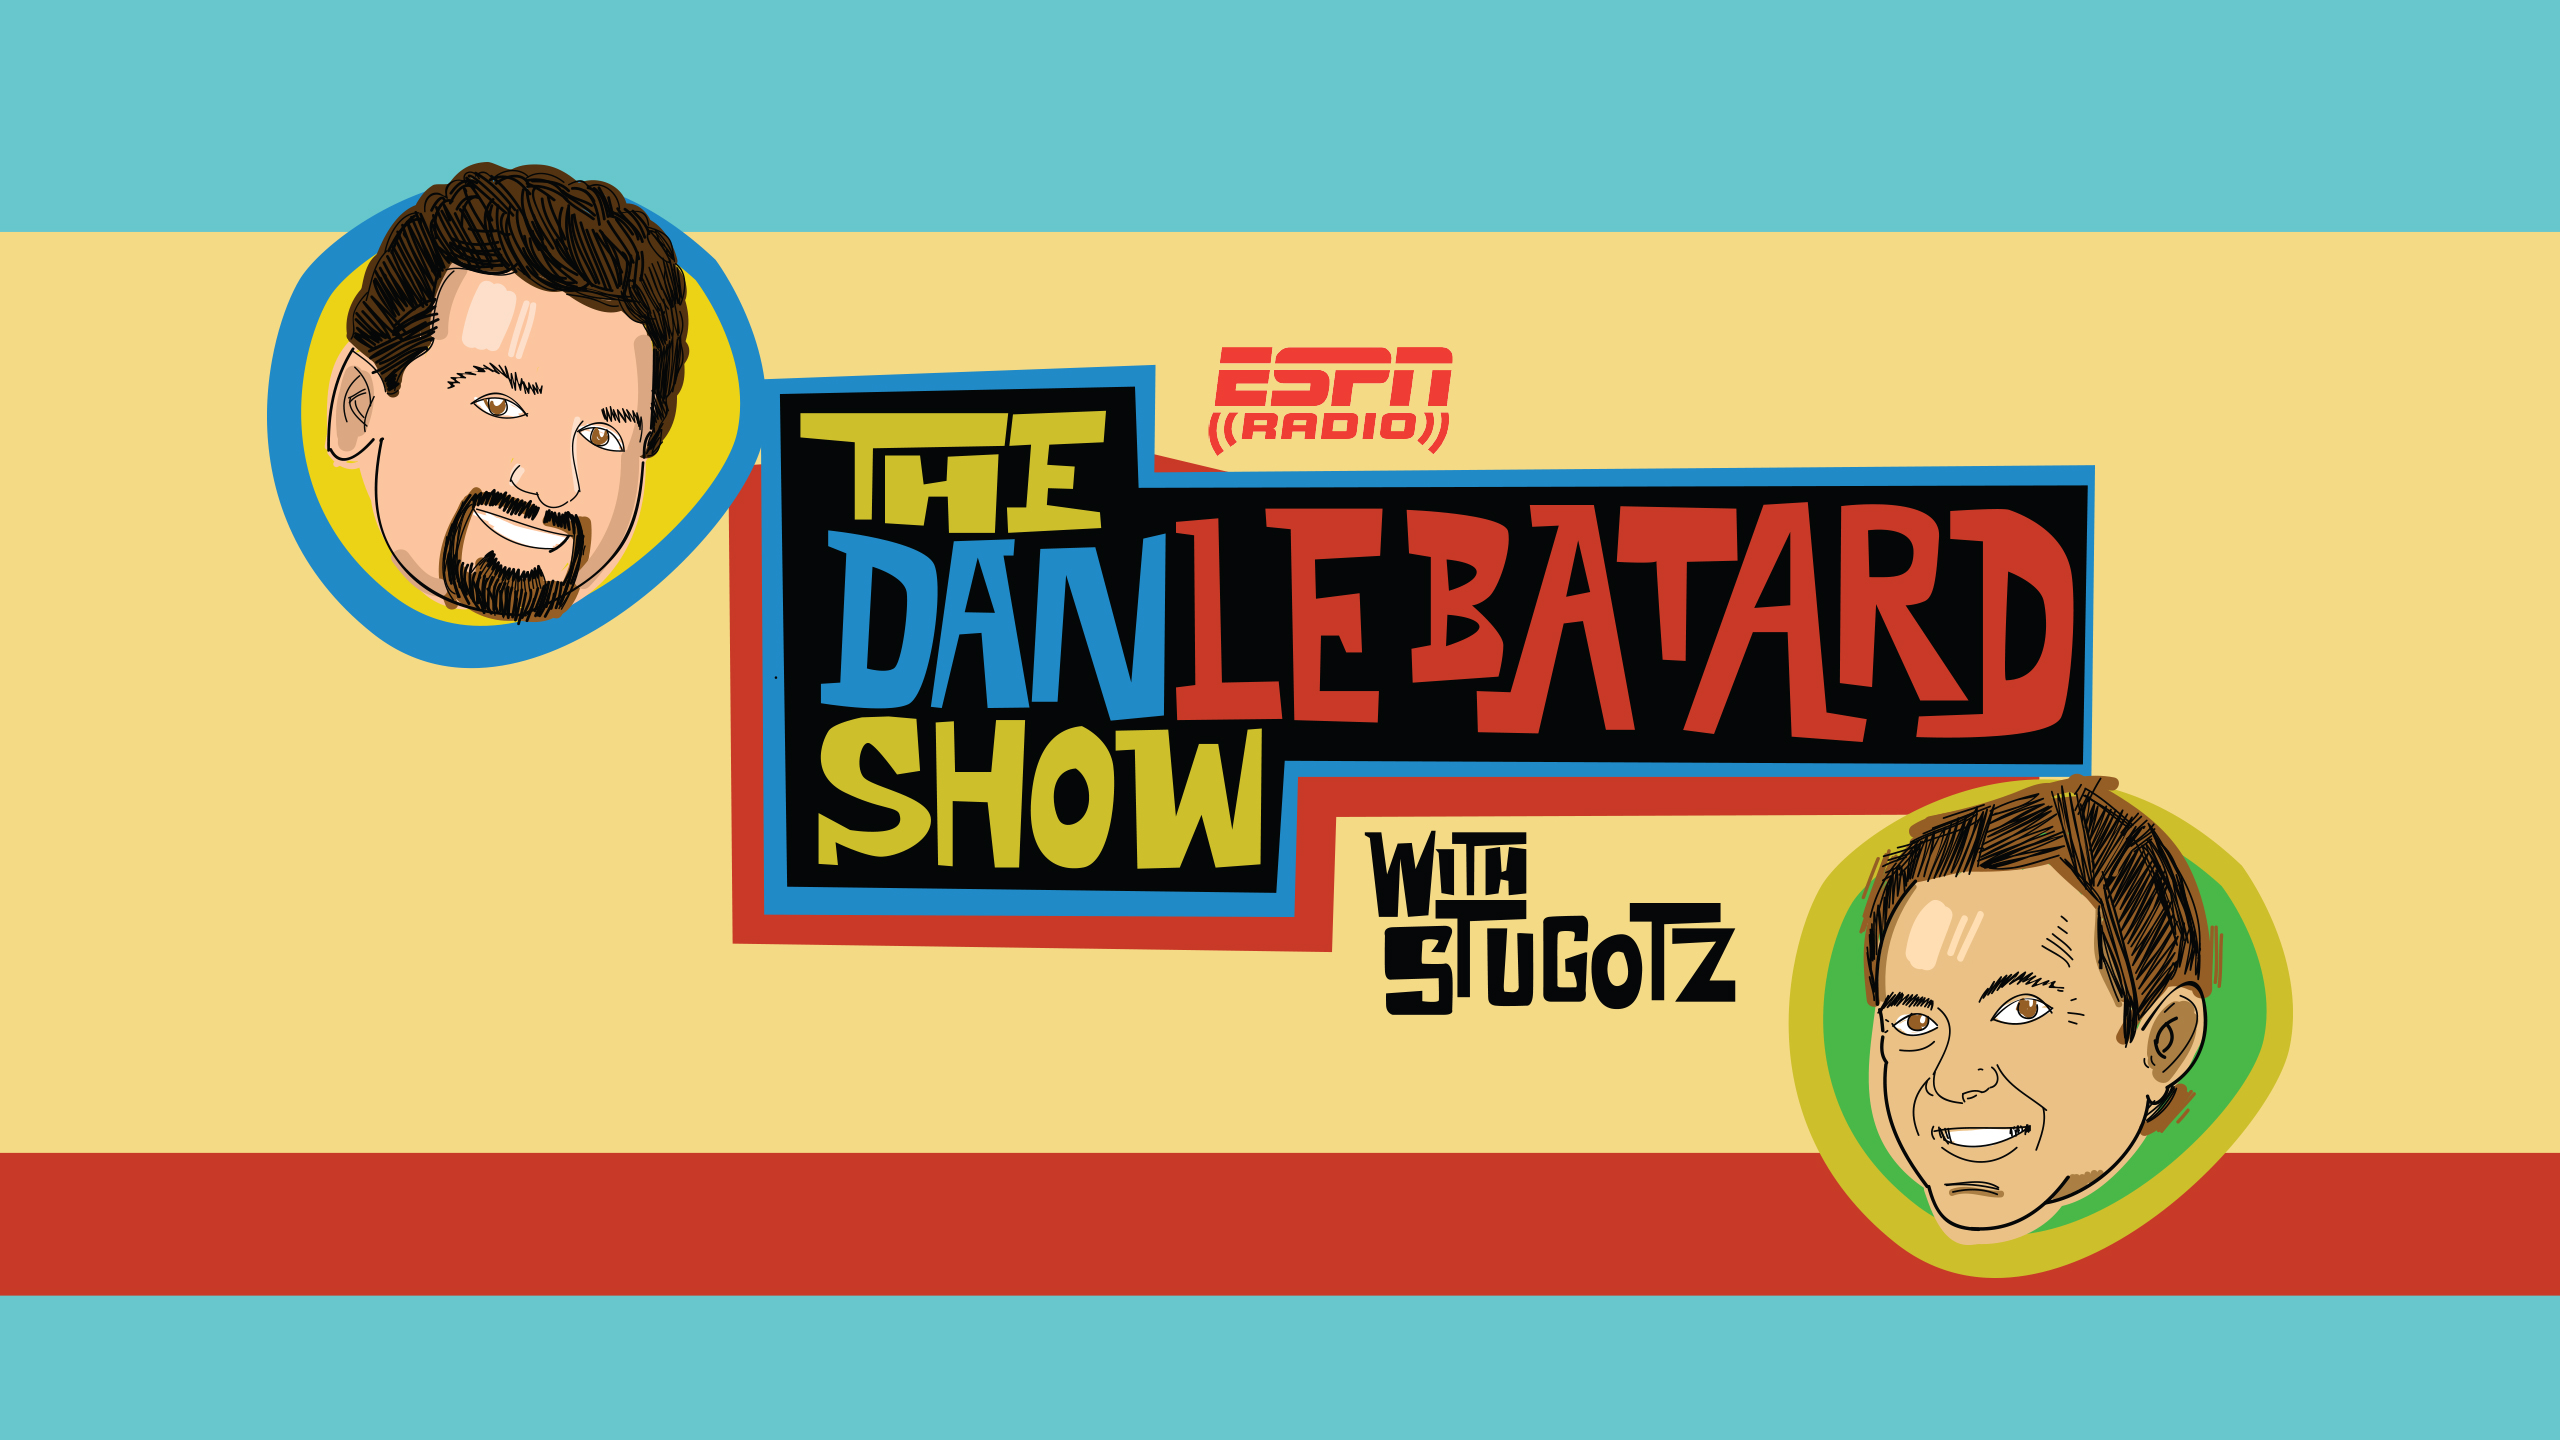 Tue, 2/19 - The Dan Le Batard Show with Stugotz Presented by Progressive